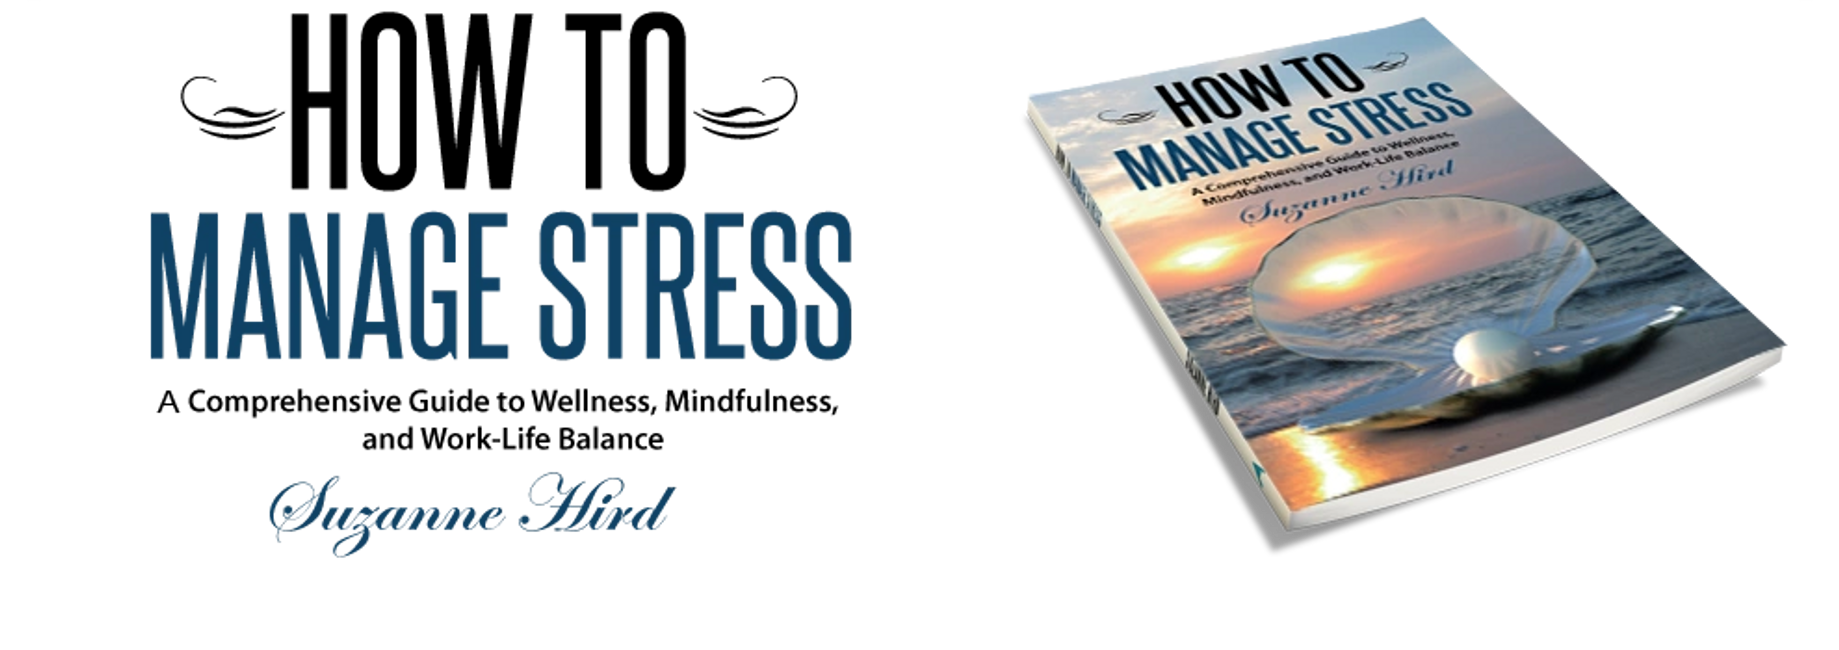 Bestselling eBook: How To Manage Stress with Stress Test